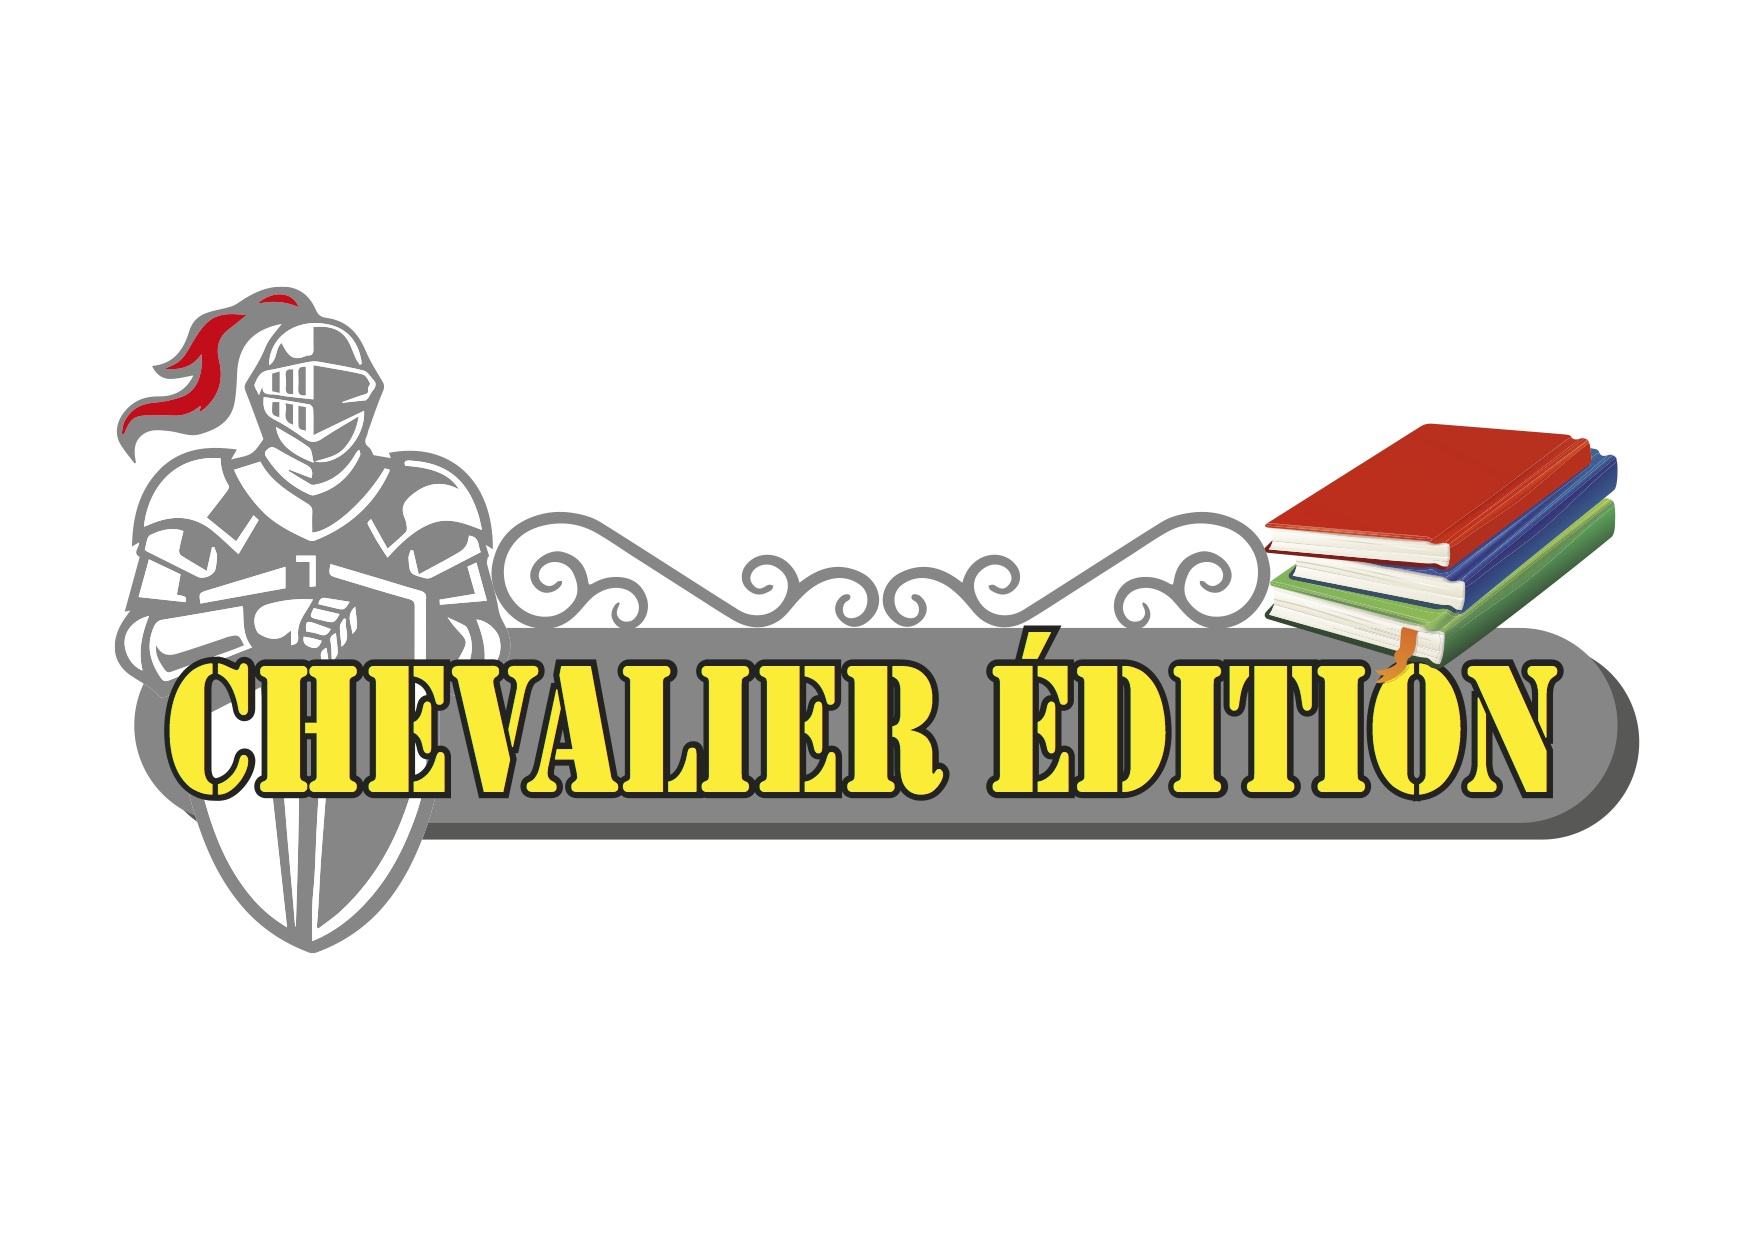 Chevalier éditions